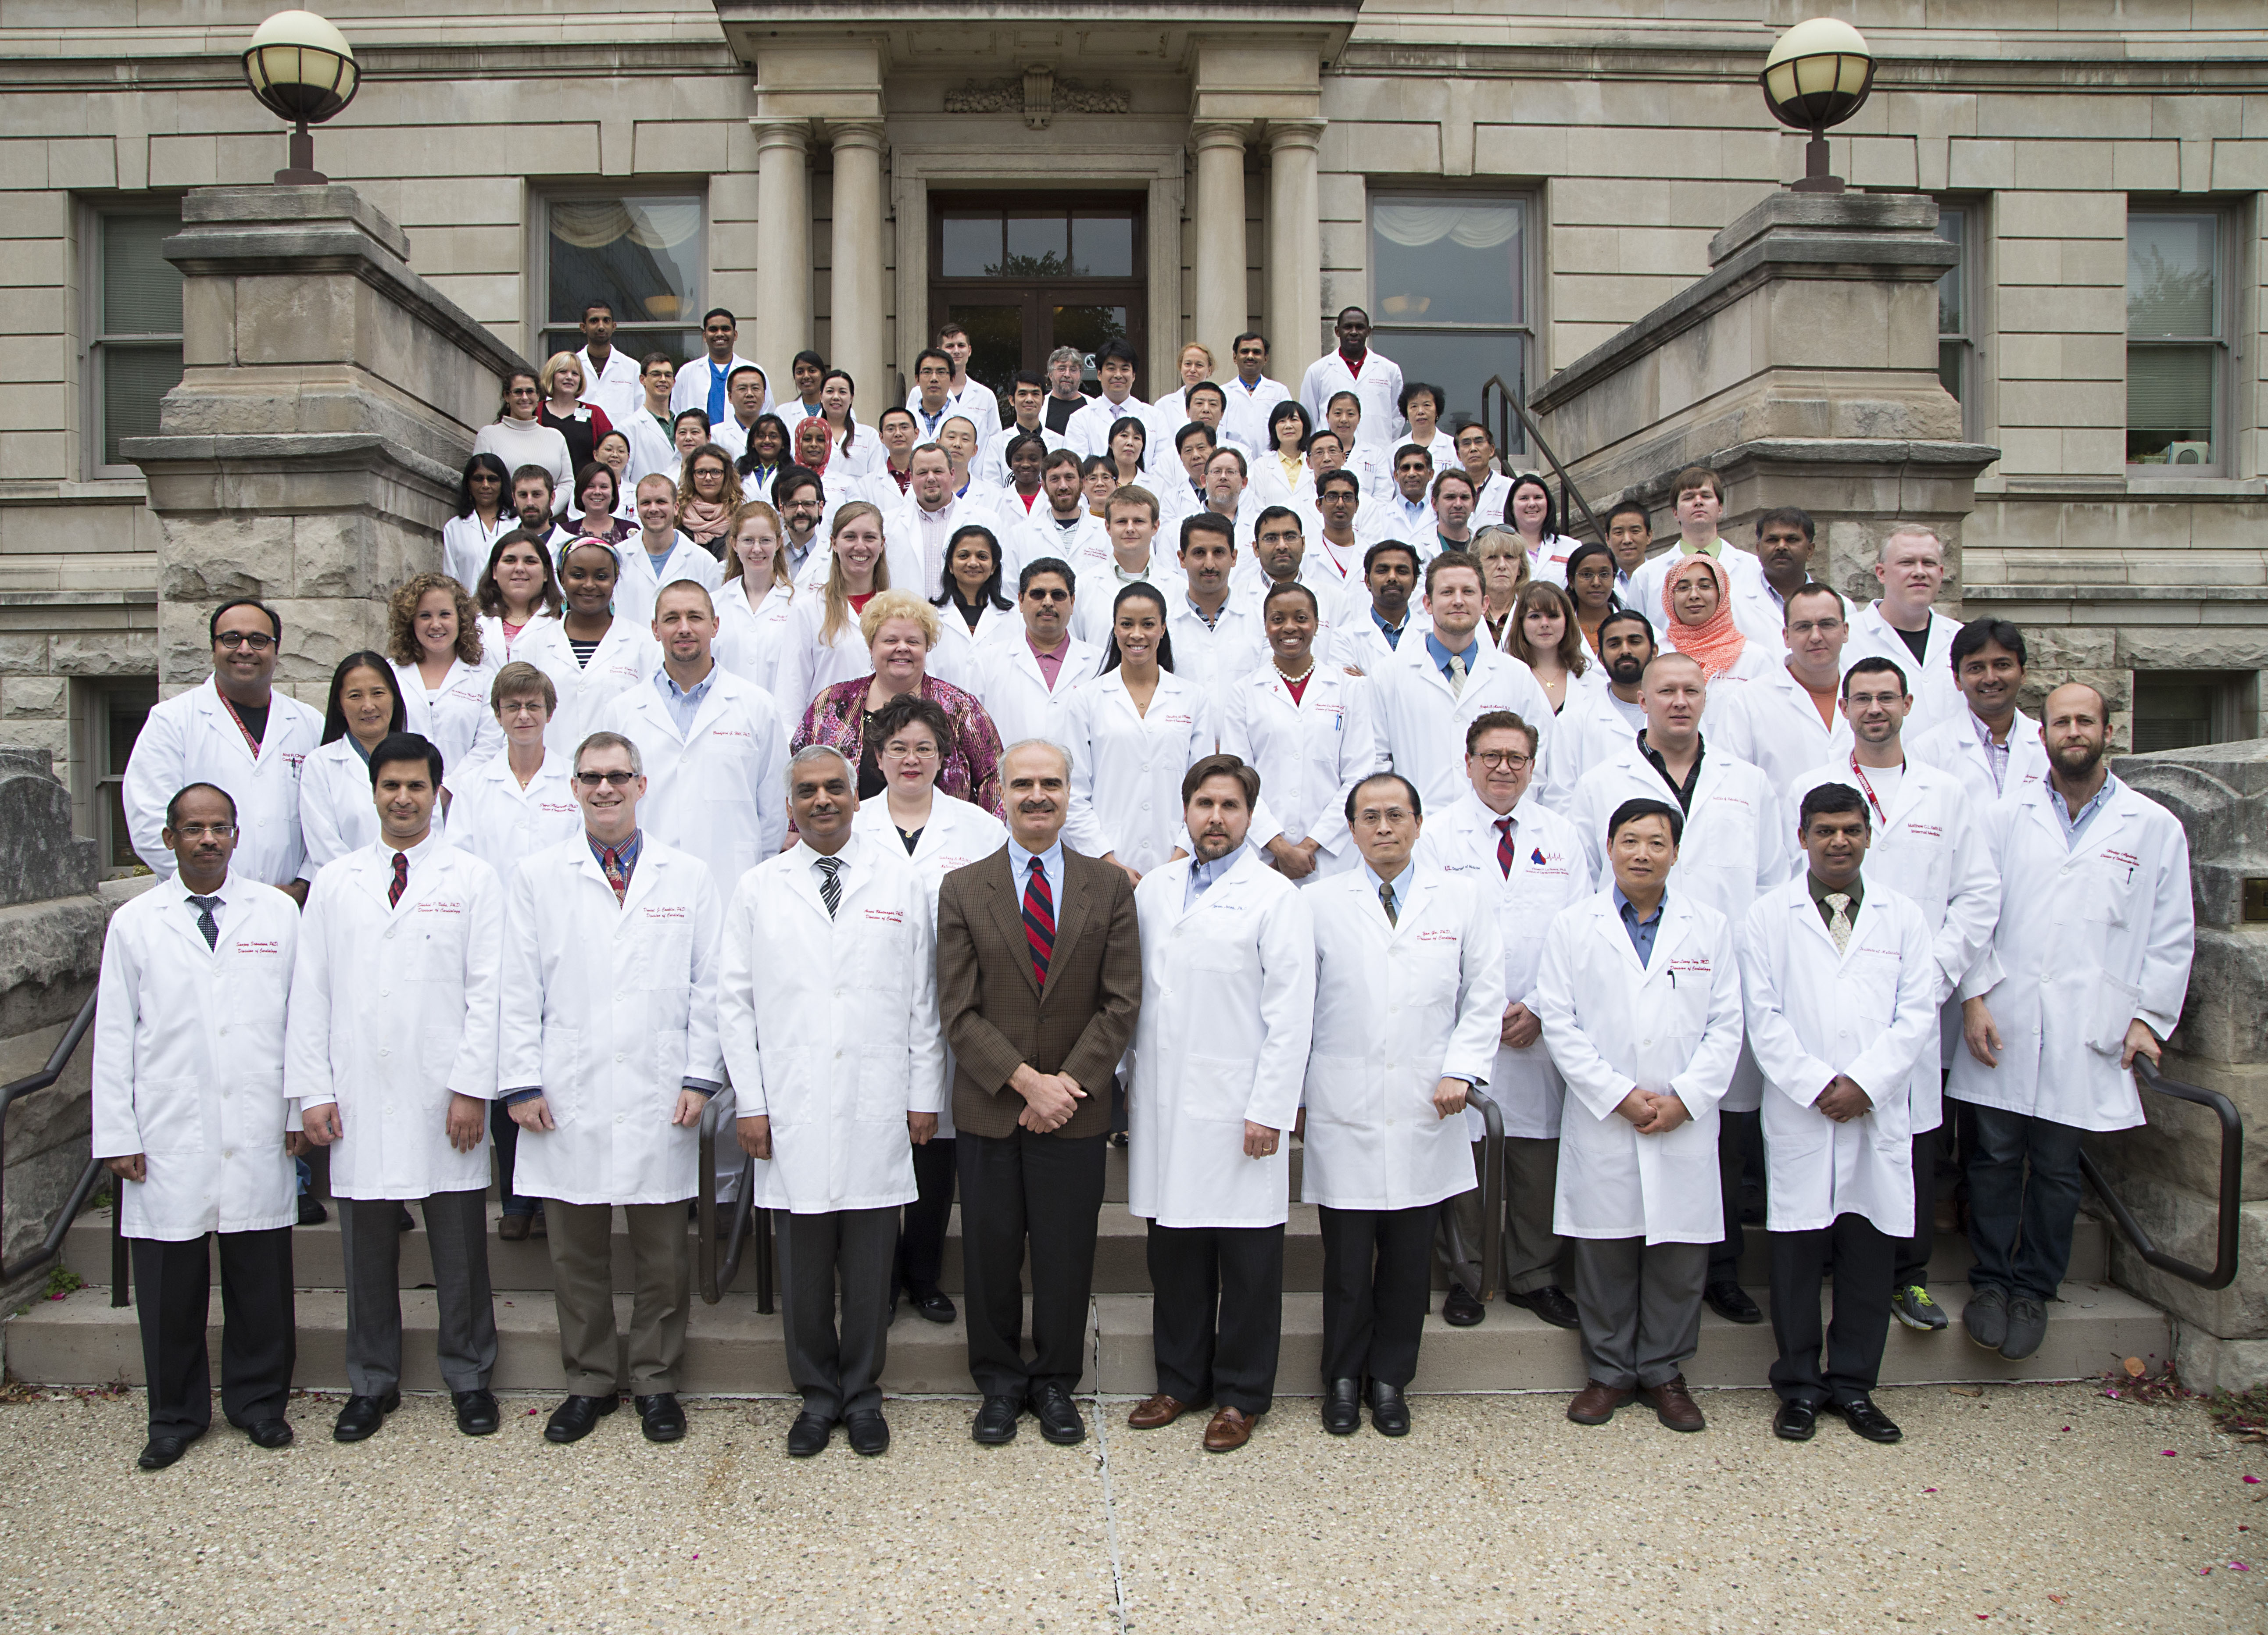 Research faculty at the Division of Cardiovascular Medicine